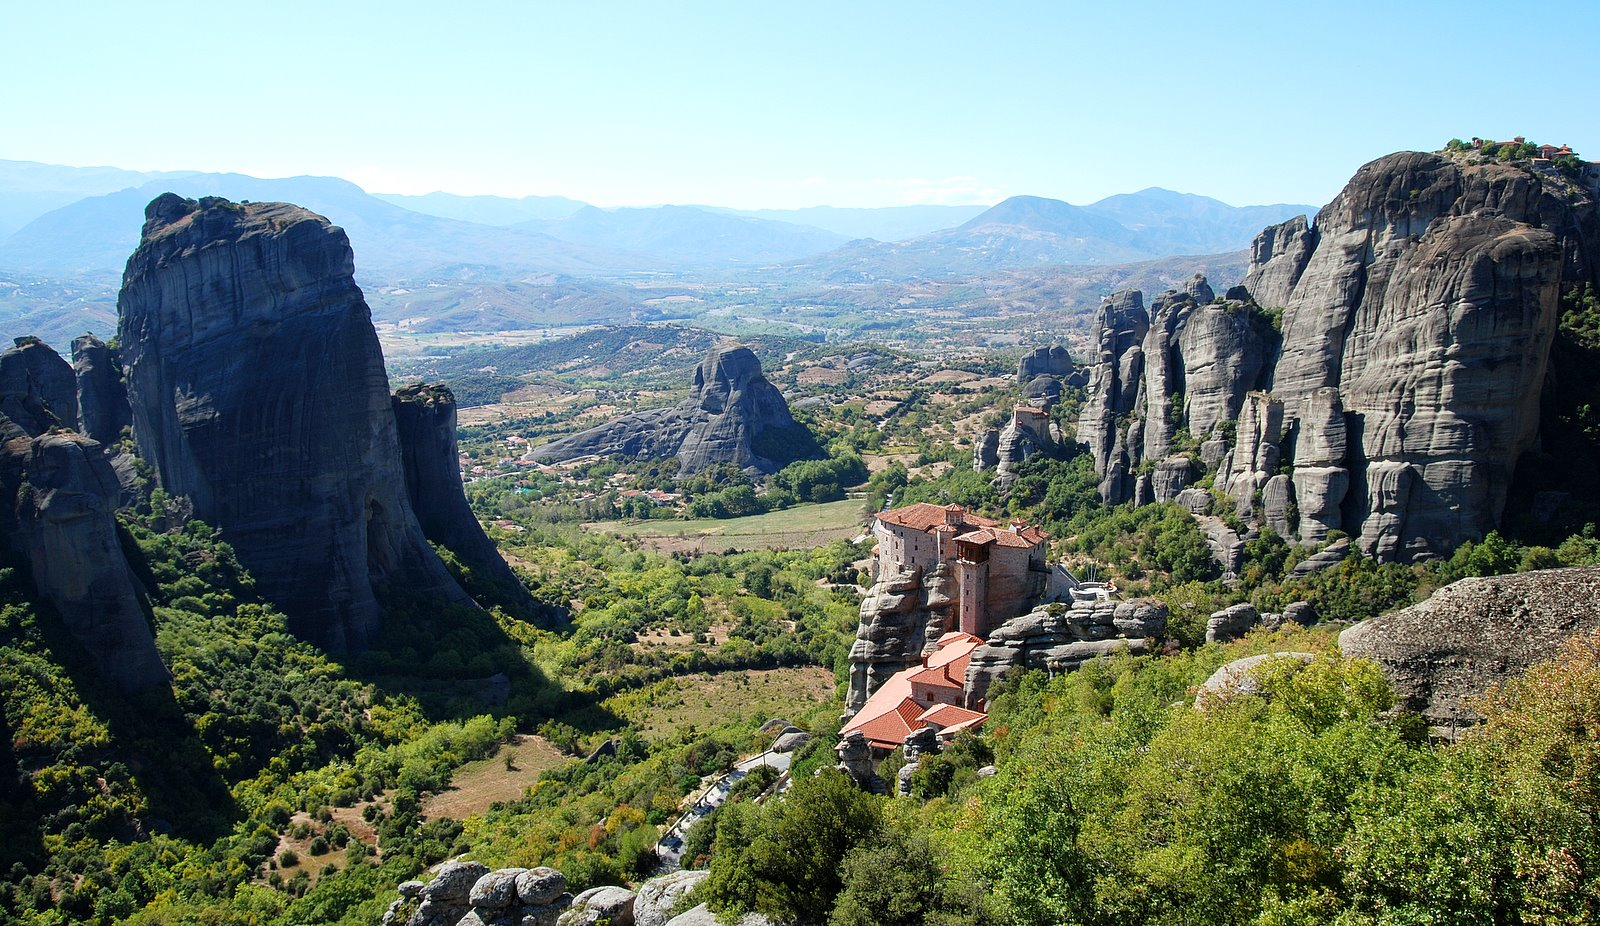 File:Greece meteora monasteries.JPG - Wikipedia